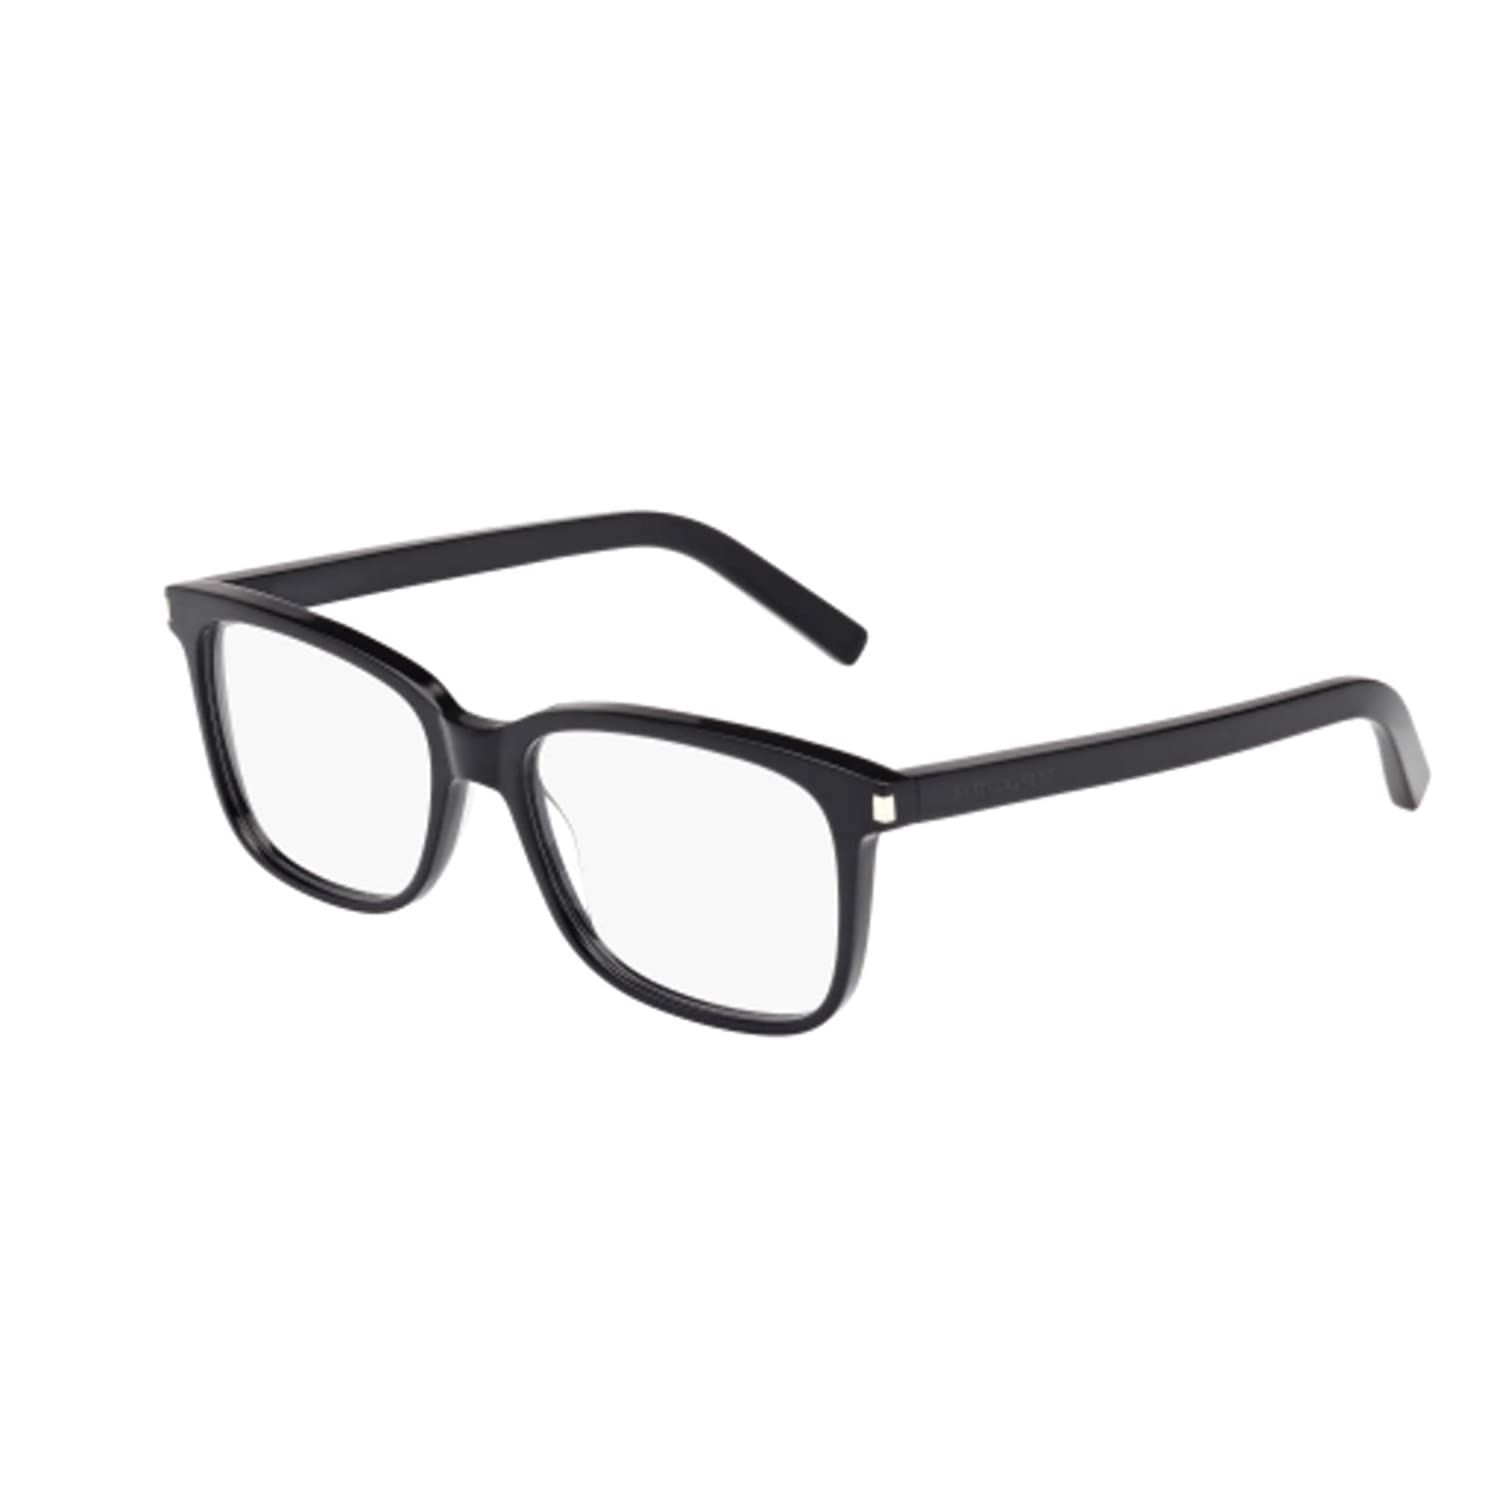 Saint Laurent Eyeglasses SL89 SL//89 001 Black//Transparent Optical Frame 54mm